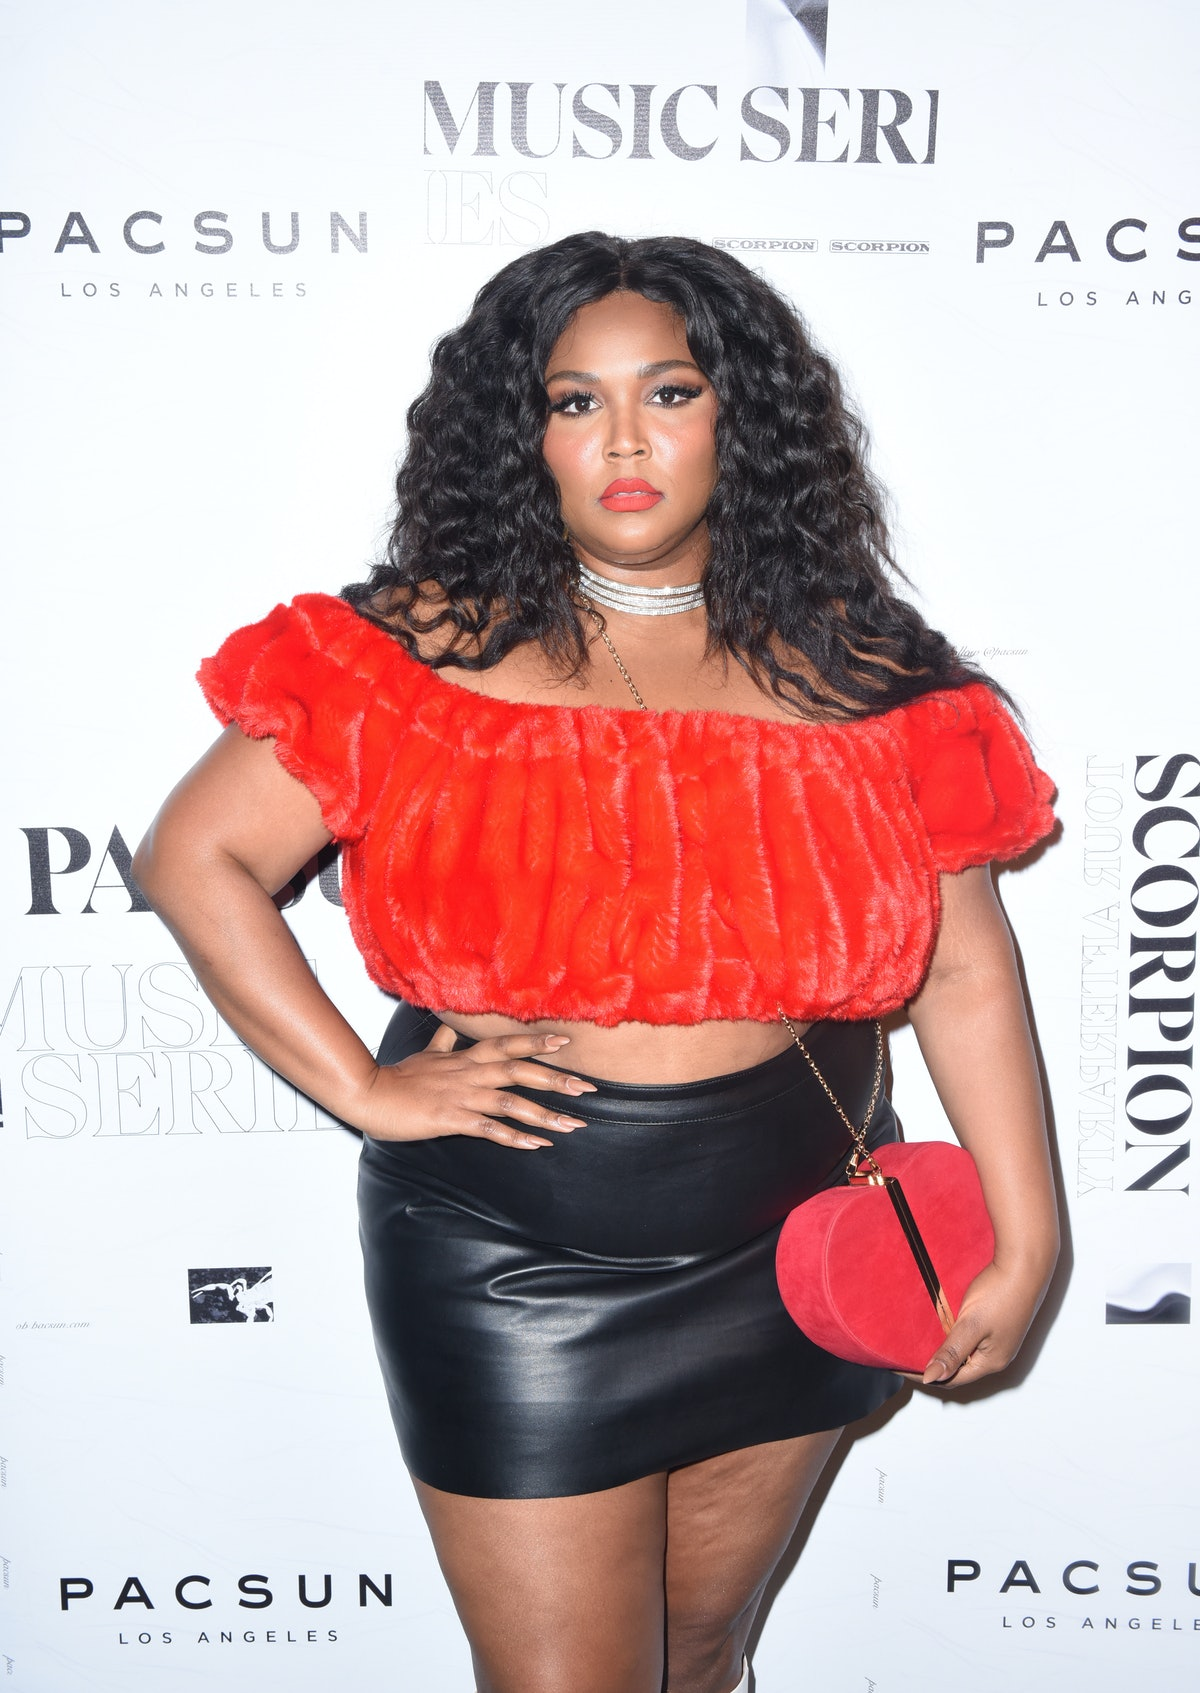 Lizzo in a red top.